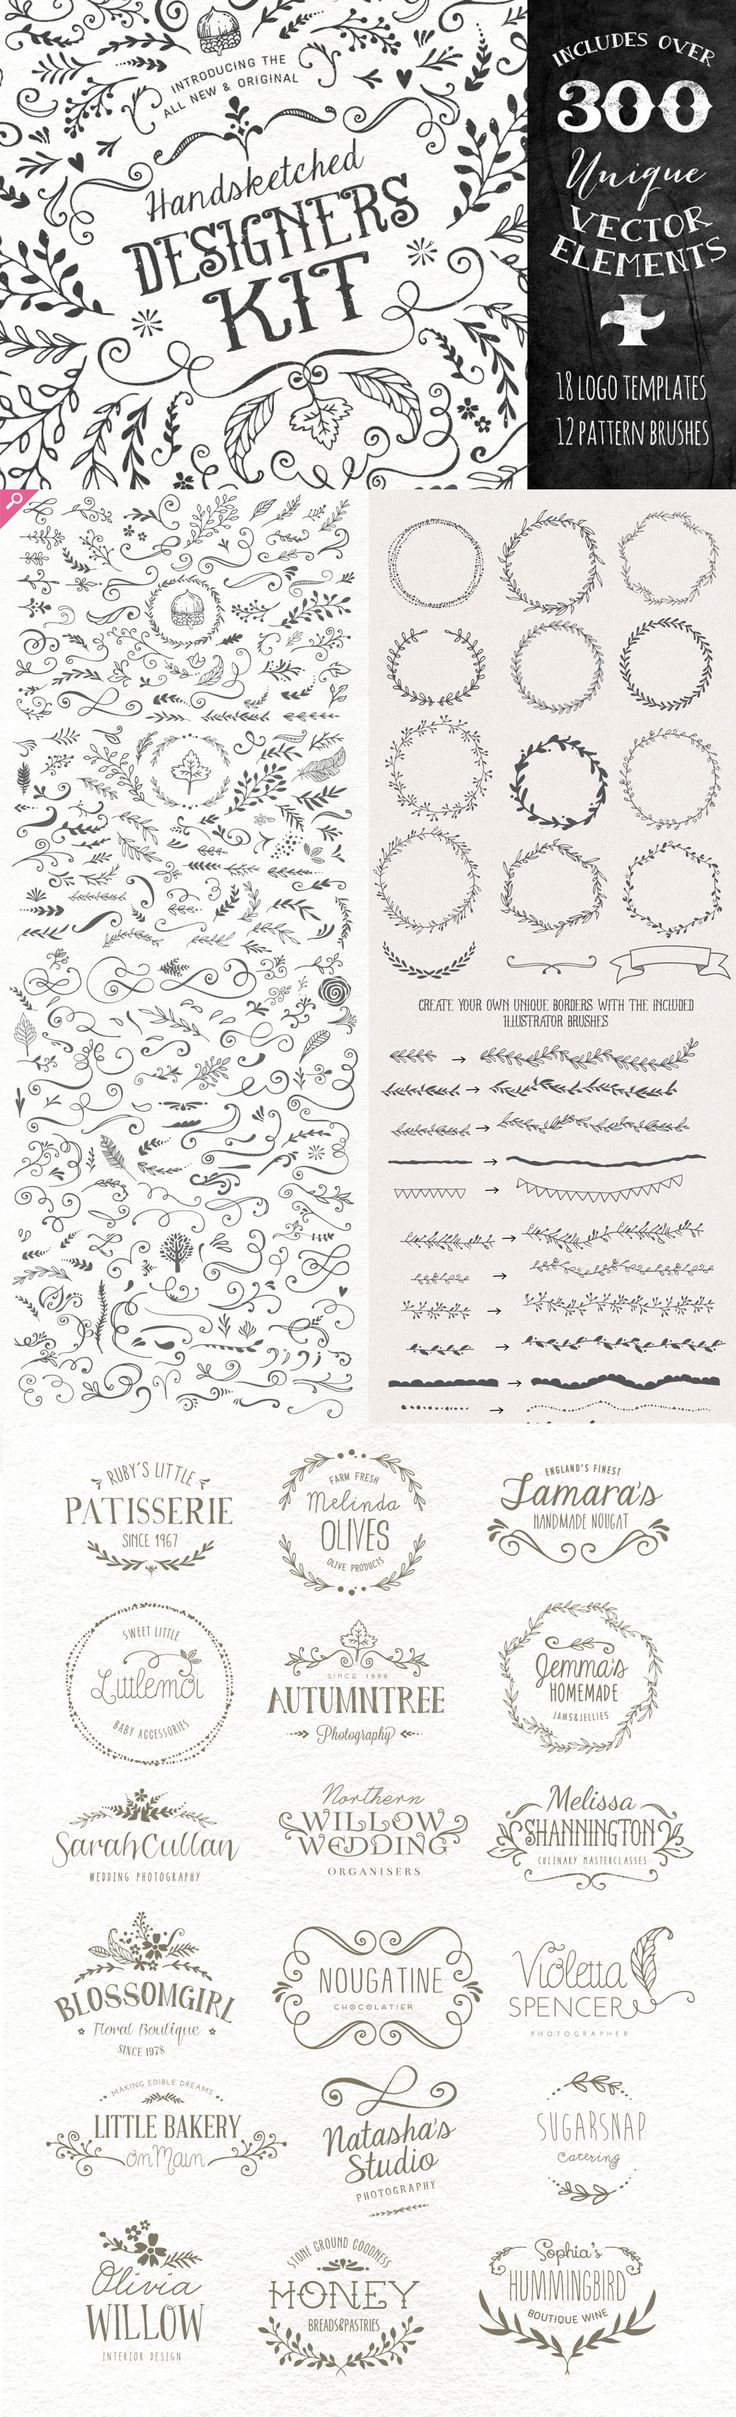 Ultimate Vector Elements Collection handdrawn logos